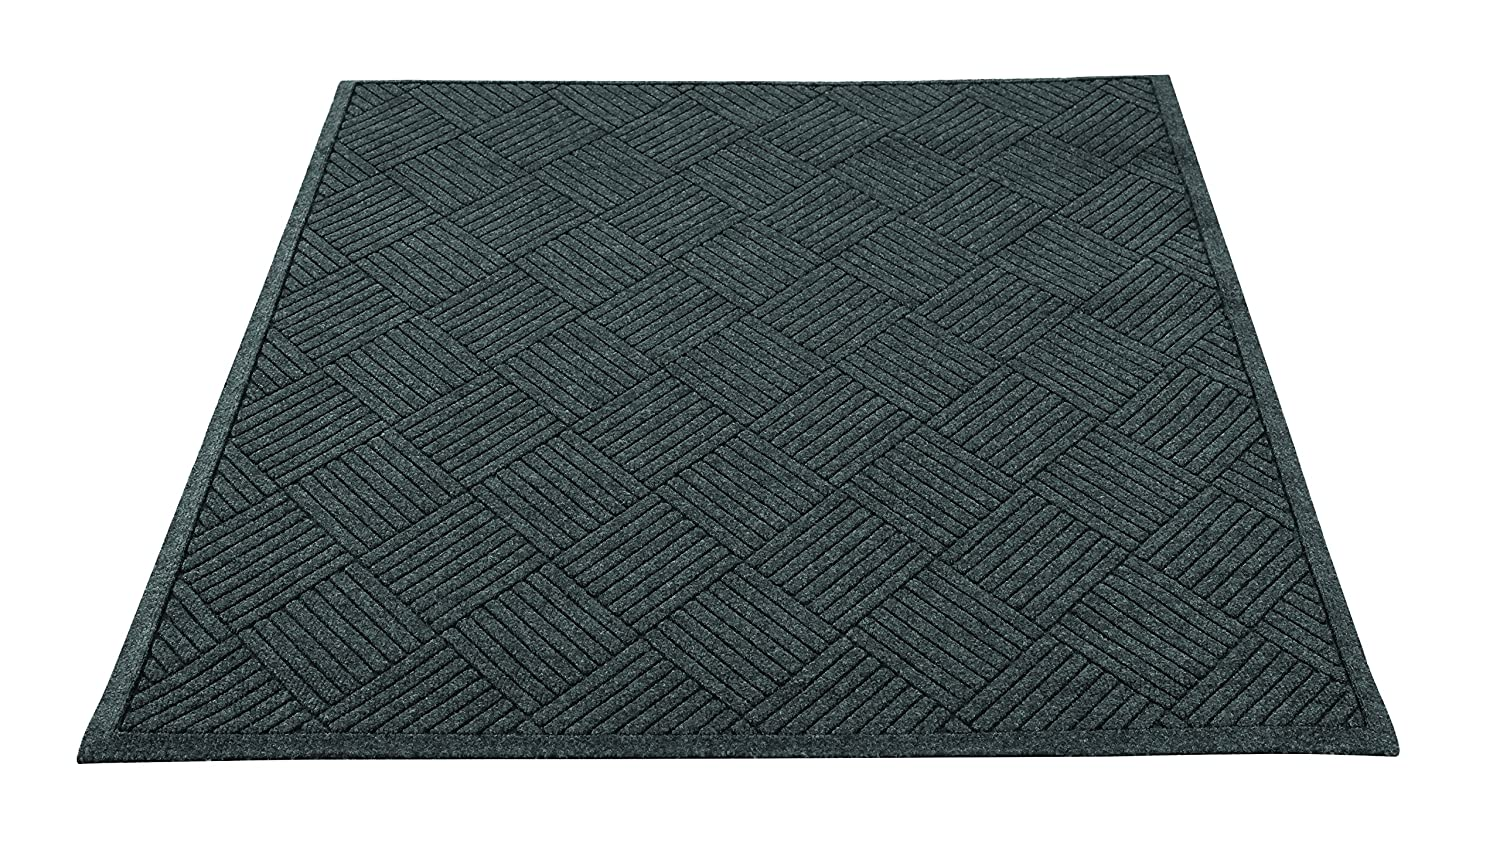 Guardian EcoGuard Diamond Indoor Wiper Floor Mat, Recycled Plactic and Rubber, 3'x5', Charcoal Black